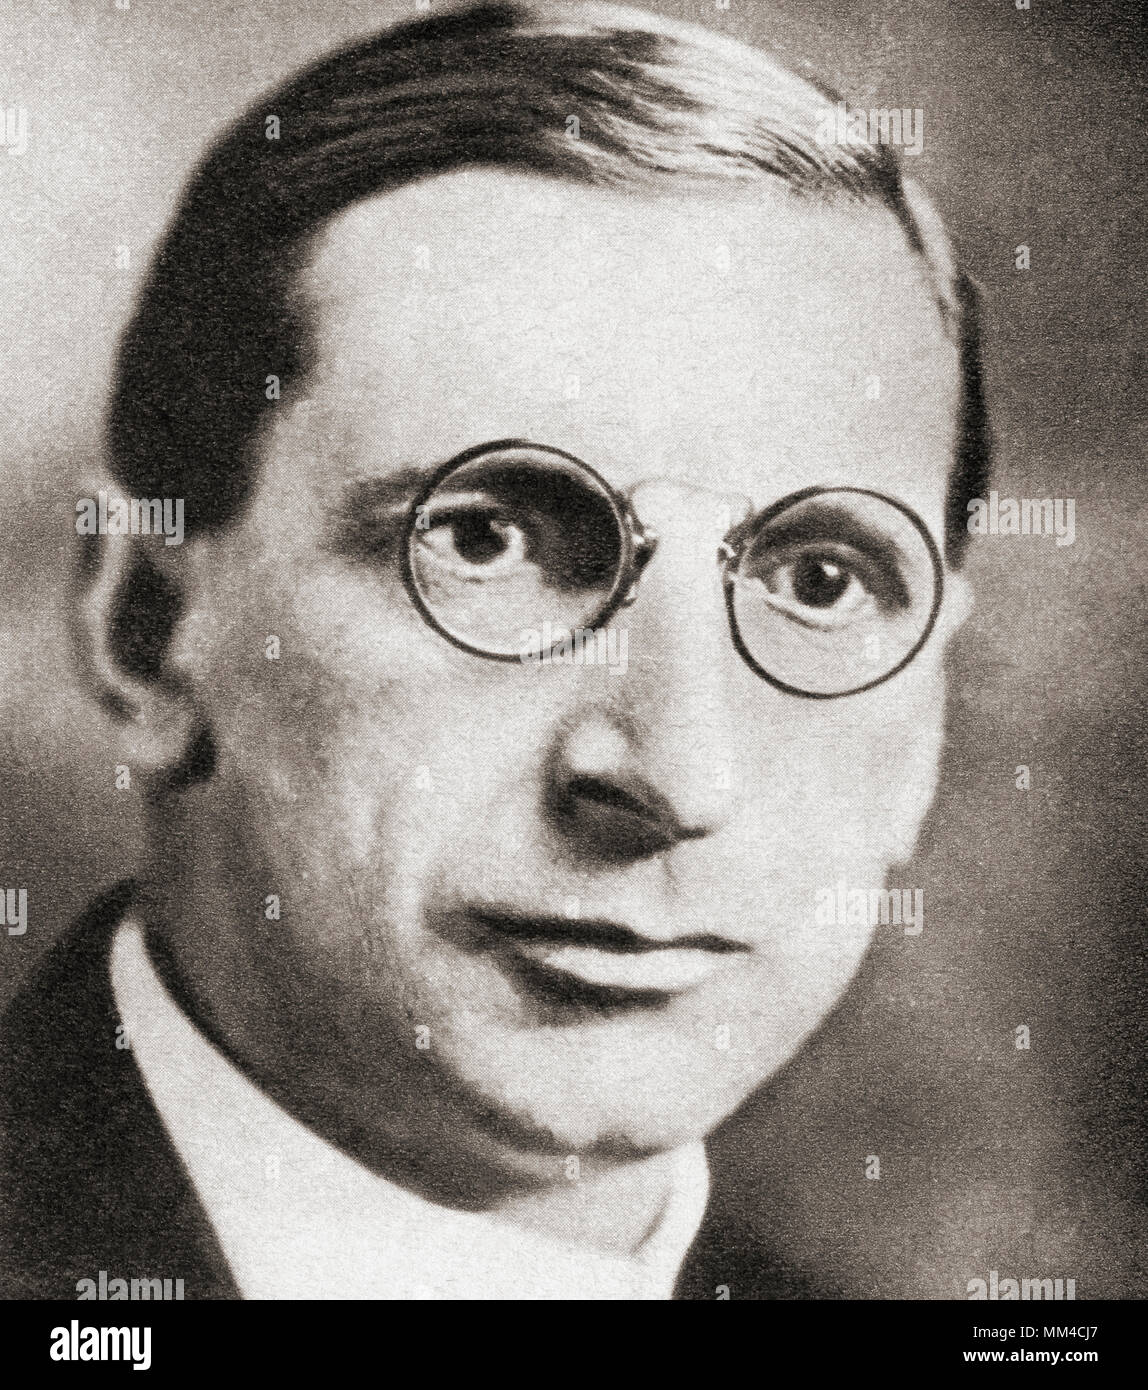 Éamon de Valera,  first registered as George de Valero but changed some time before 1901 to Edward de Valera, 1882 –  1975.  Irish statesman and political leader.  From The Pageant of the Century, published 1934 - Stock Image